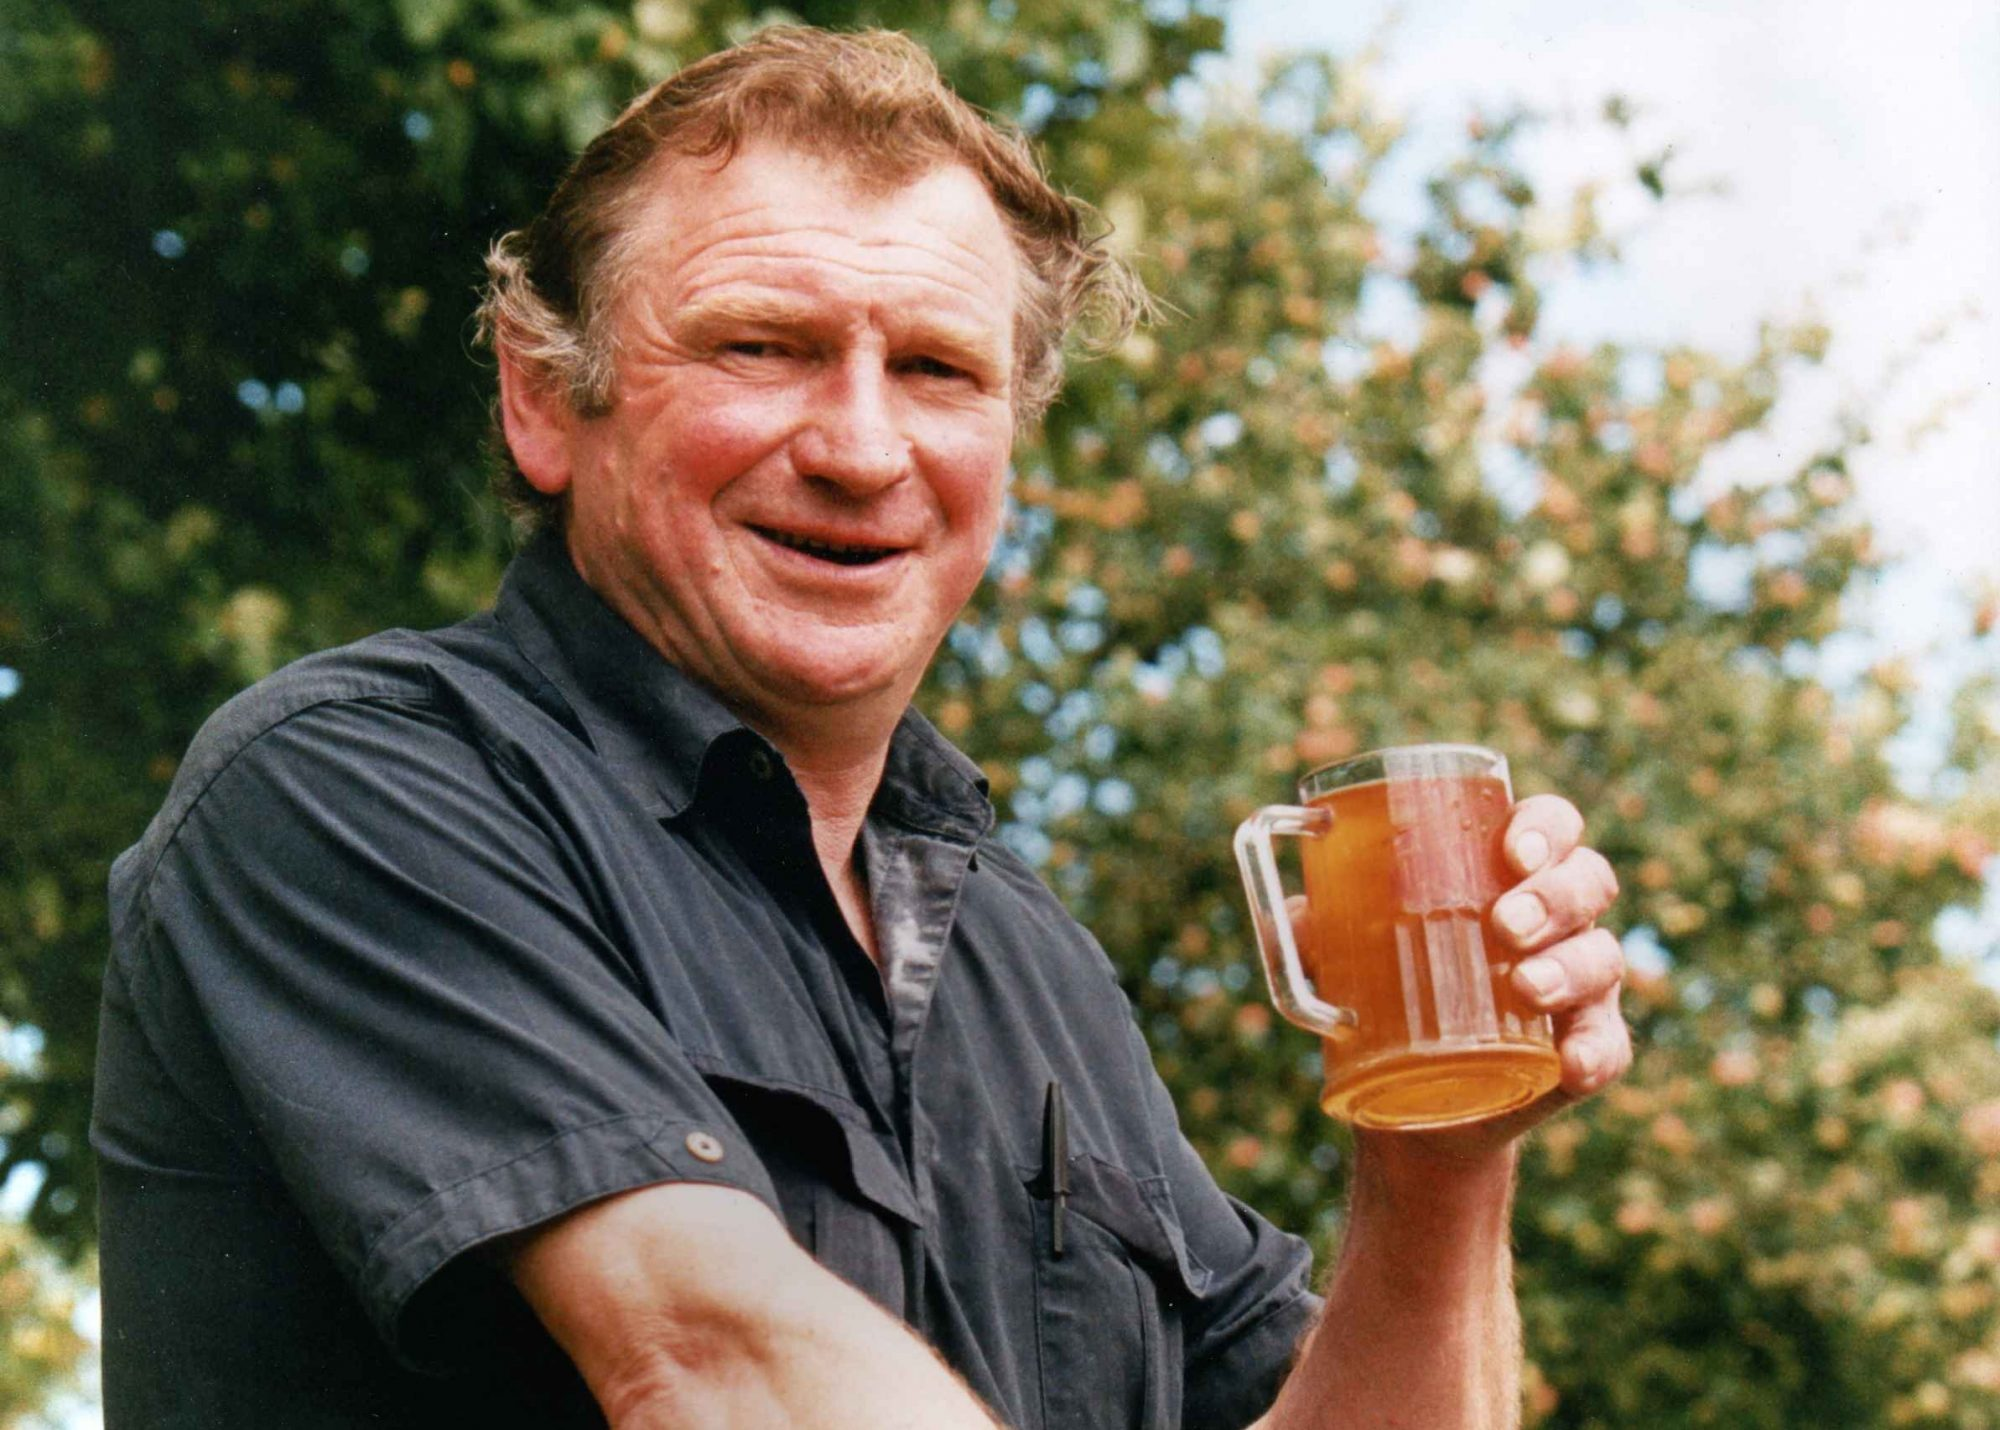 Roger Wilkins, the maker of the worlds best cider